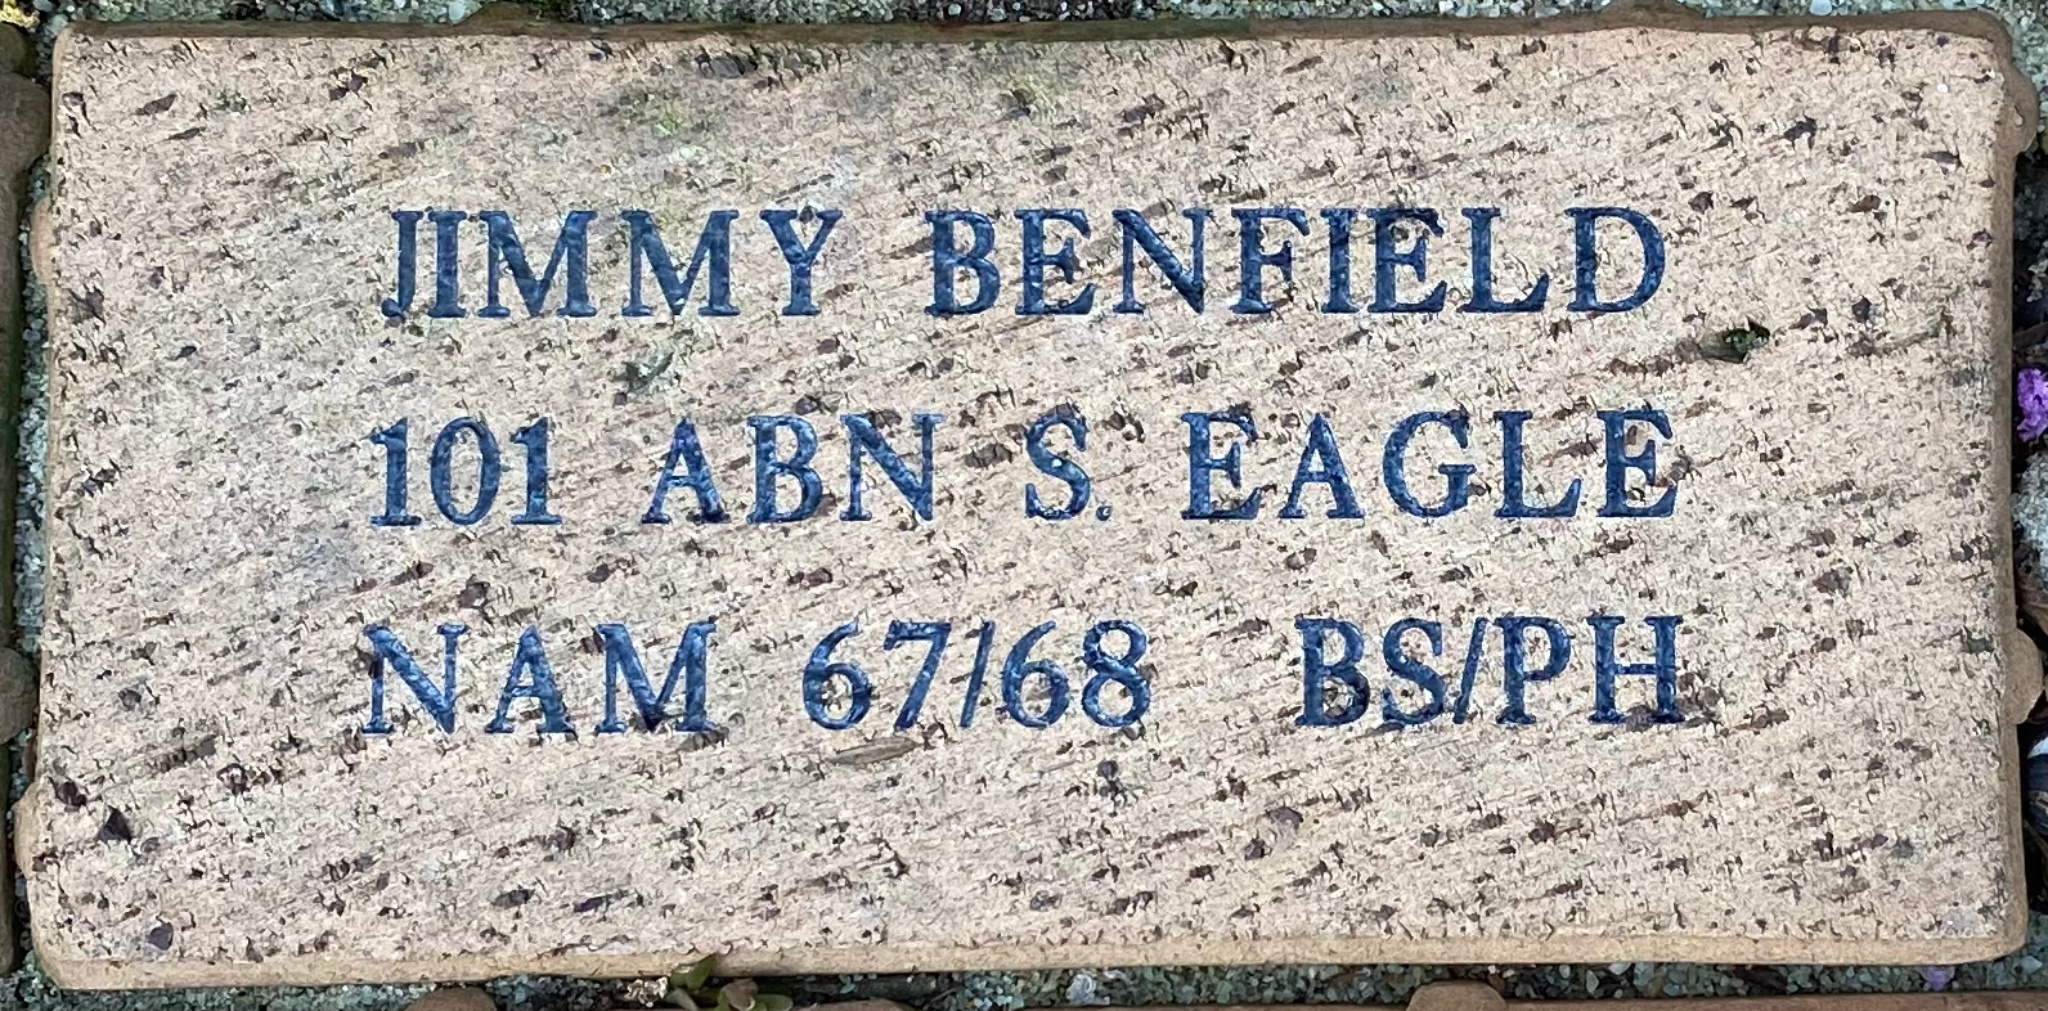 JIMMY BENFIELD 101 ABN S. EAGLE NAM 67/68 BS/PH